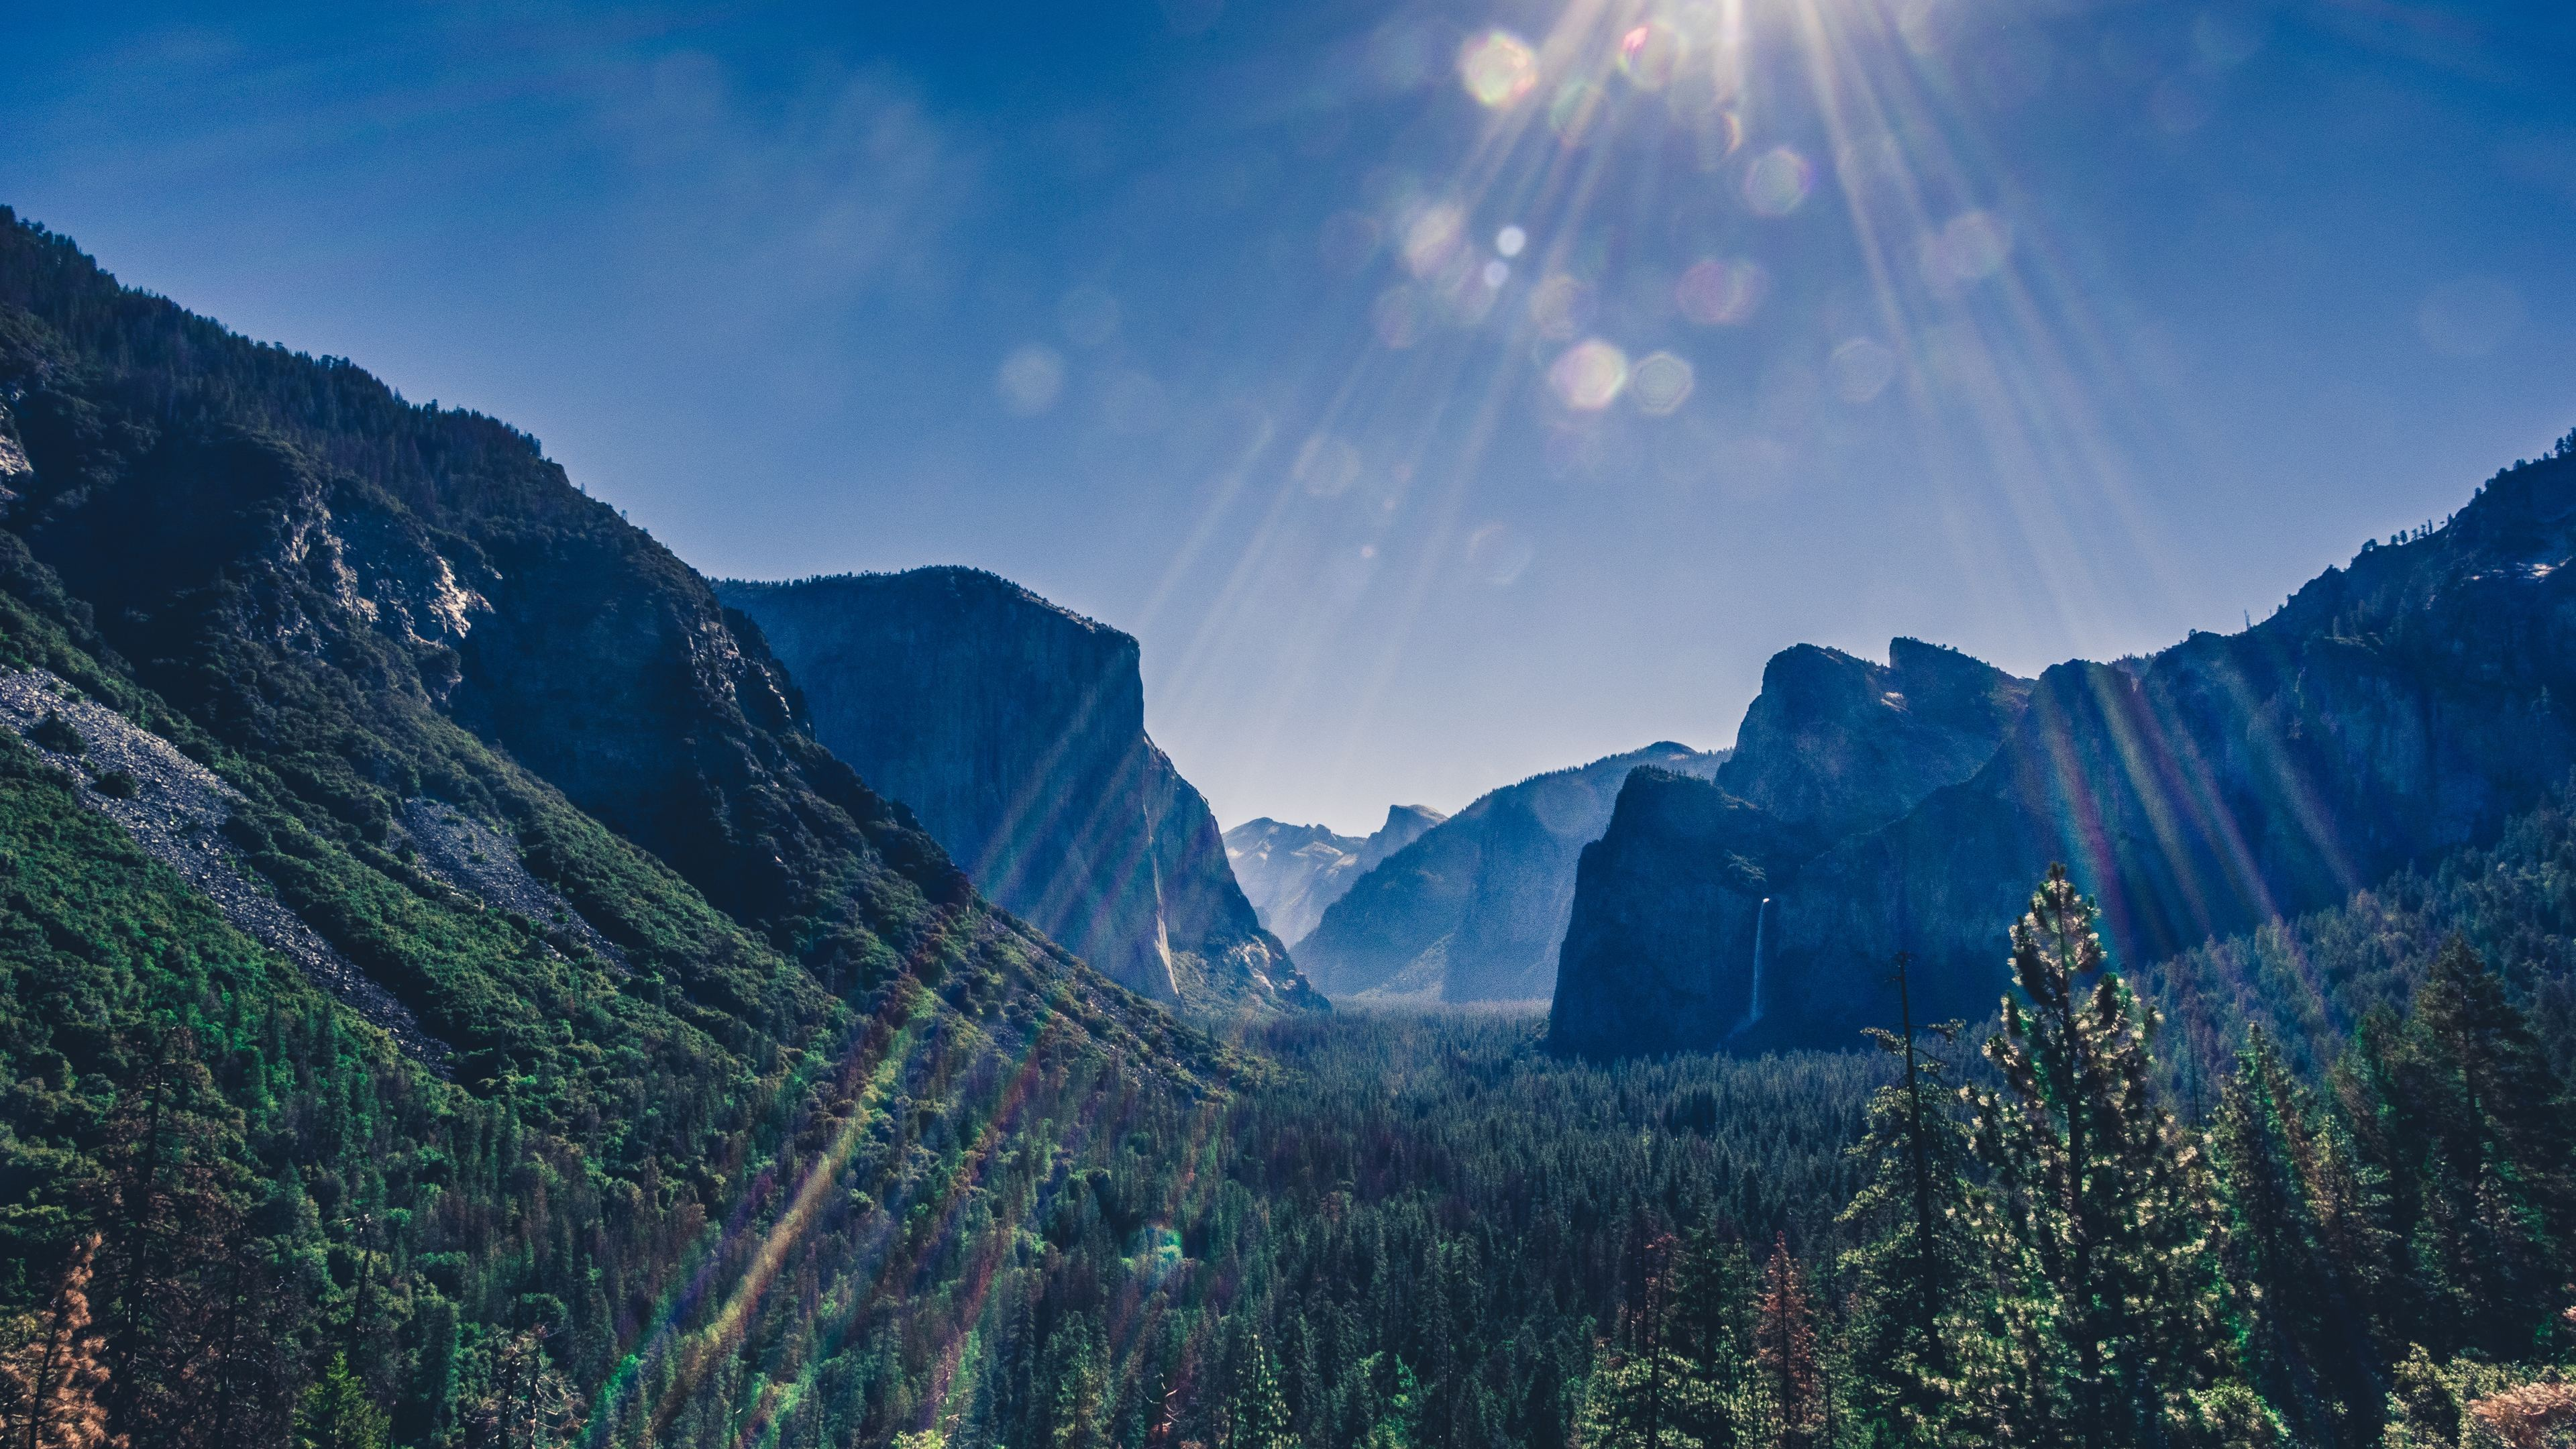 yosemite valley landsacpe 4k 1551643825 - Yosemite Valley Landsacpe 4k - yosemite wallpapers, valley wallpapers, sunbeam wallpapers, nature wallpapers, mountains wallpapers, landscape wallpapers, hd-wallpapers, 4k-wallpapers